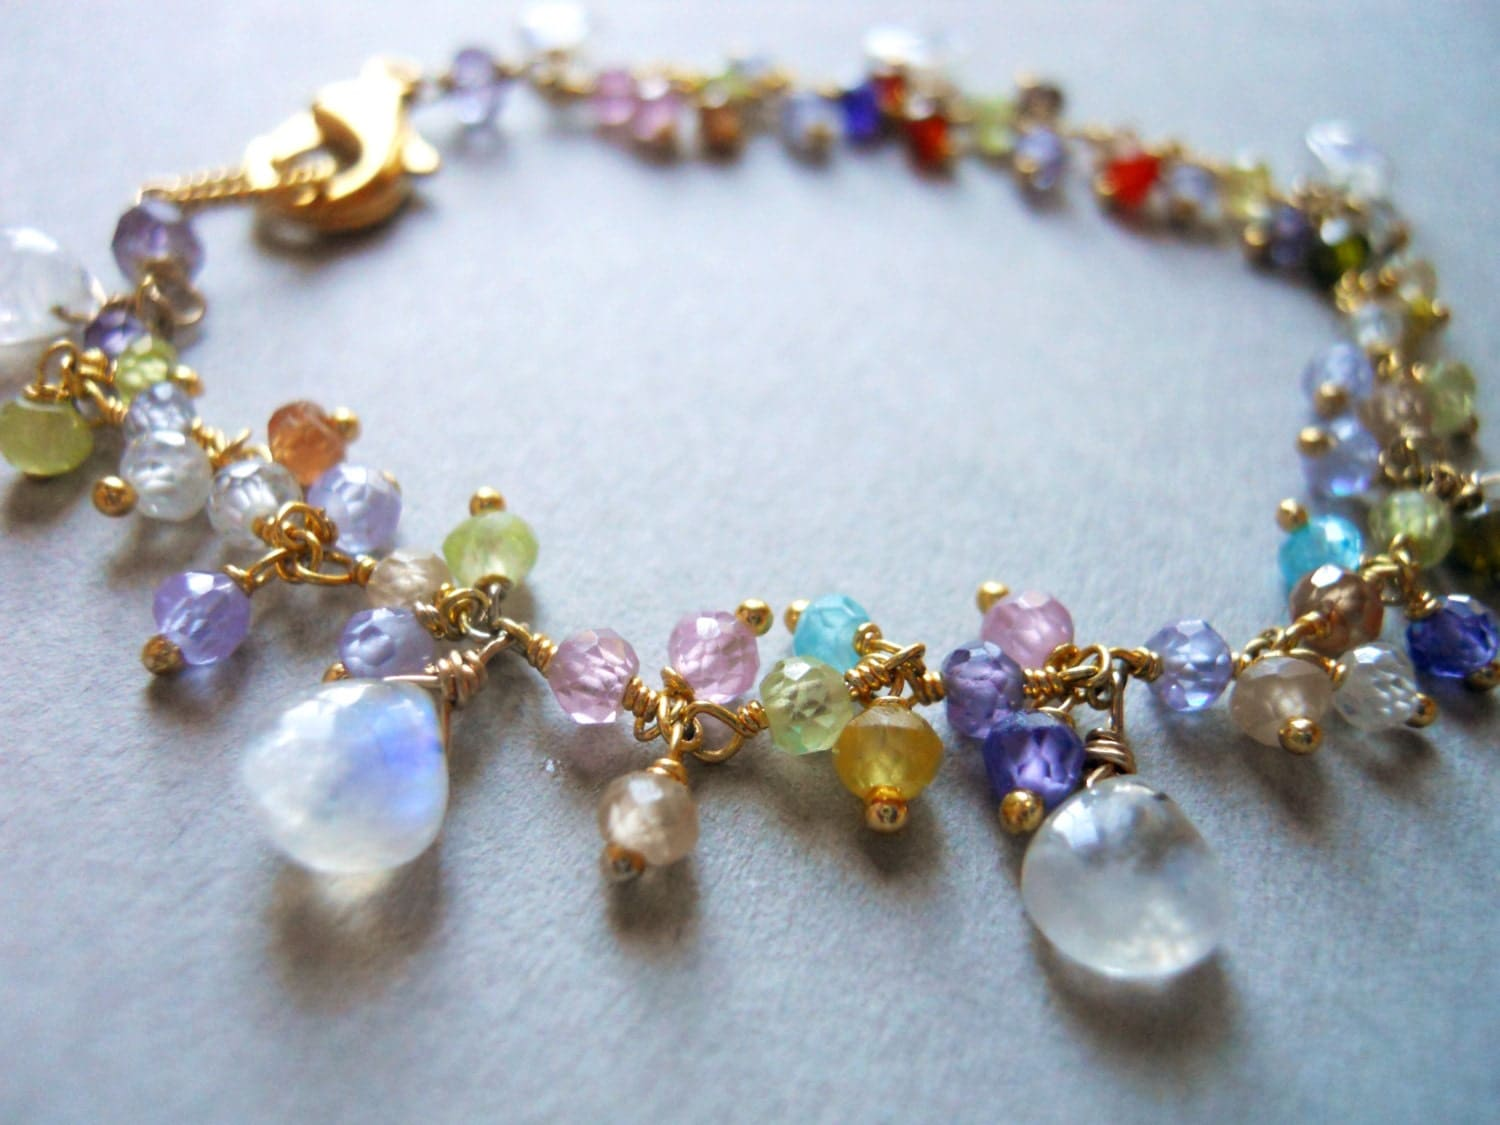 Fiery Moonstone multi gemstone cluster bracelet - $82.00 USD